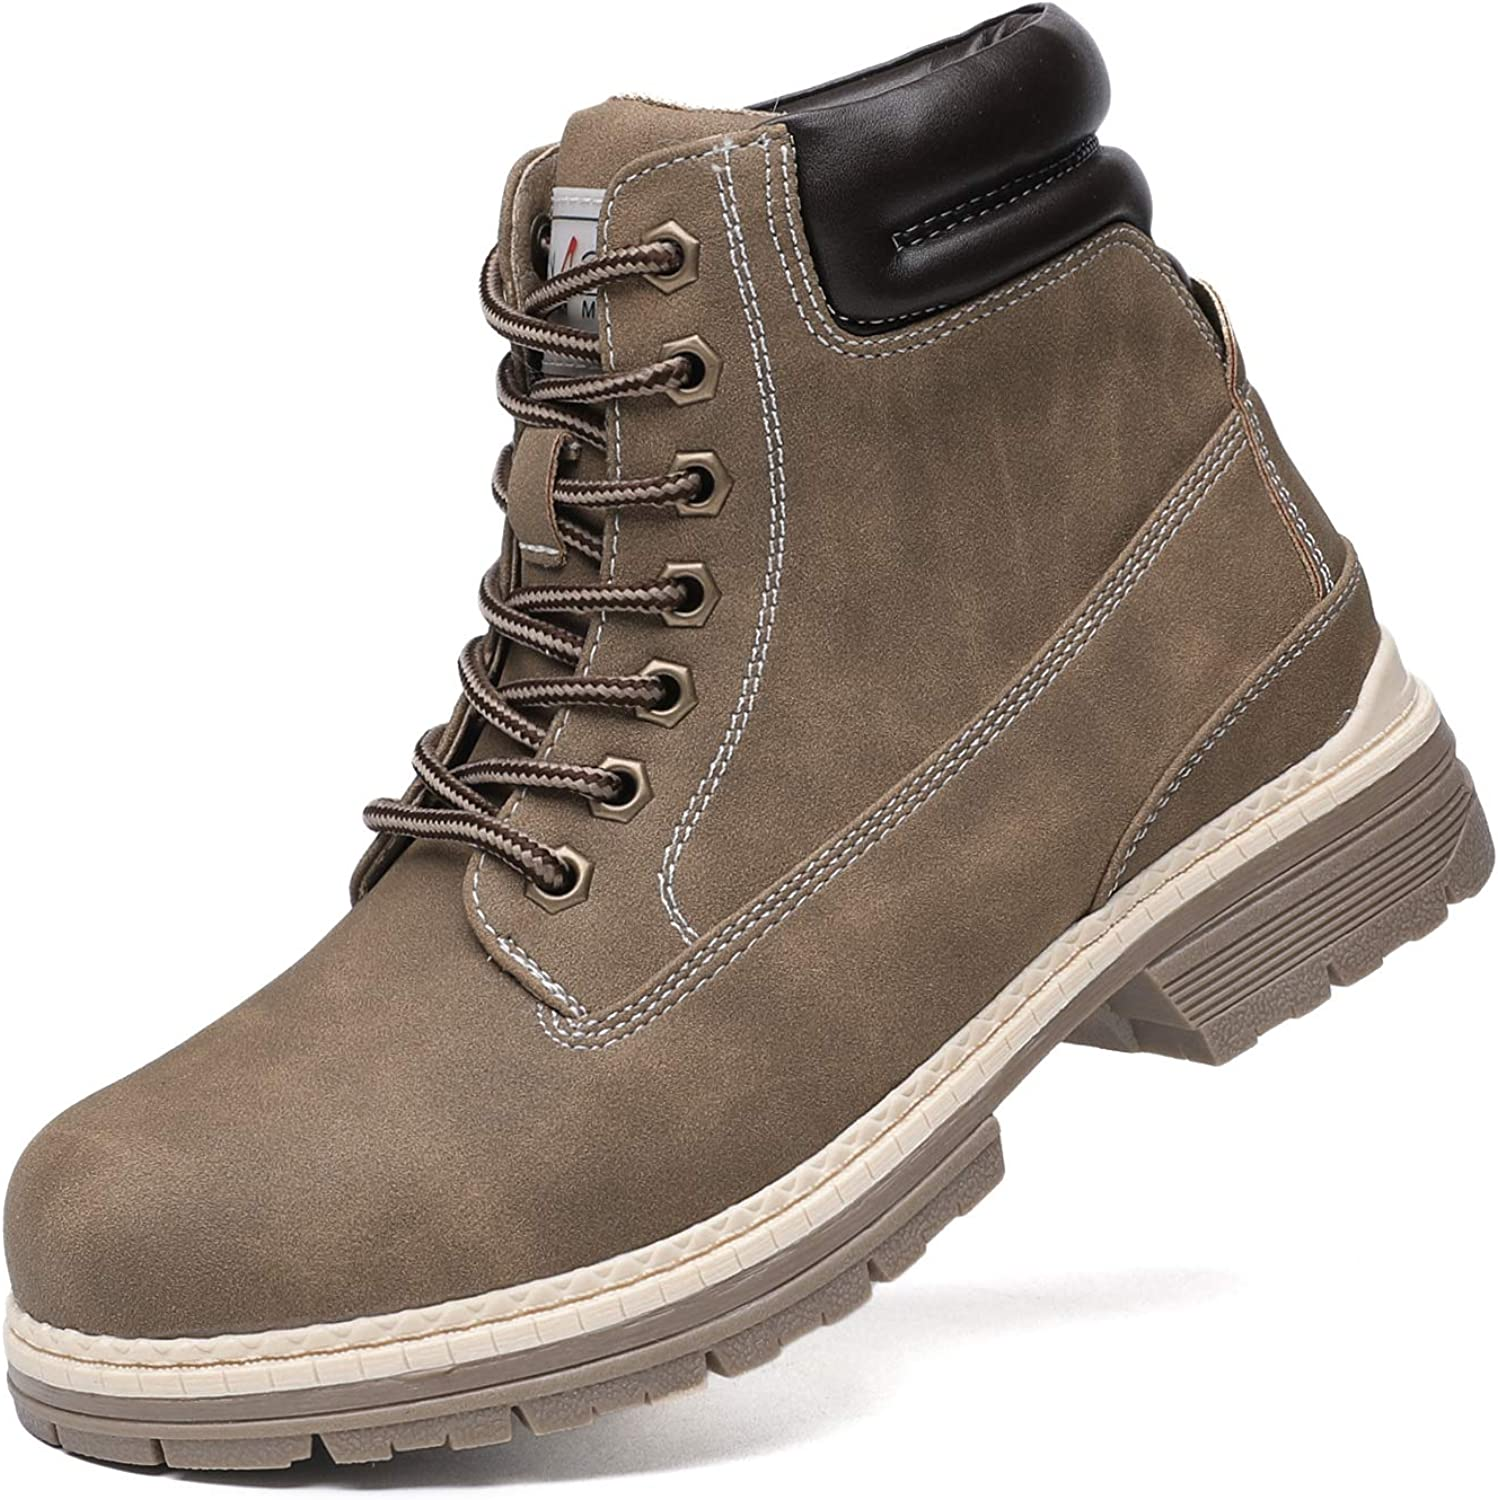 New popularity Combat Work Hiking Boots for Women Japan Maker New